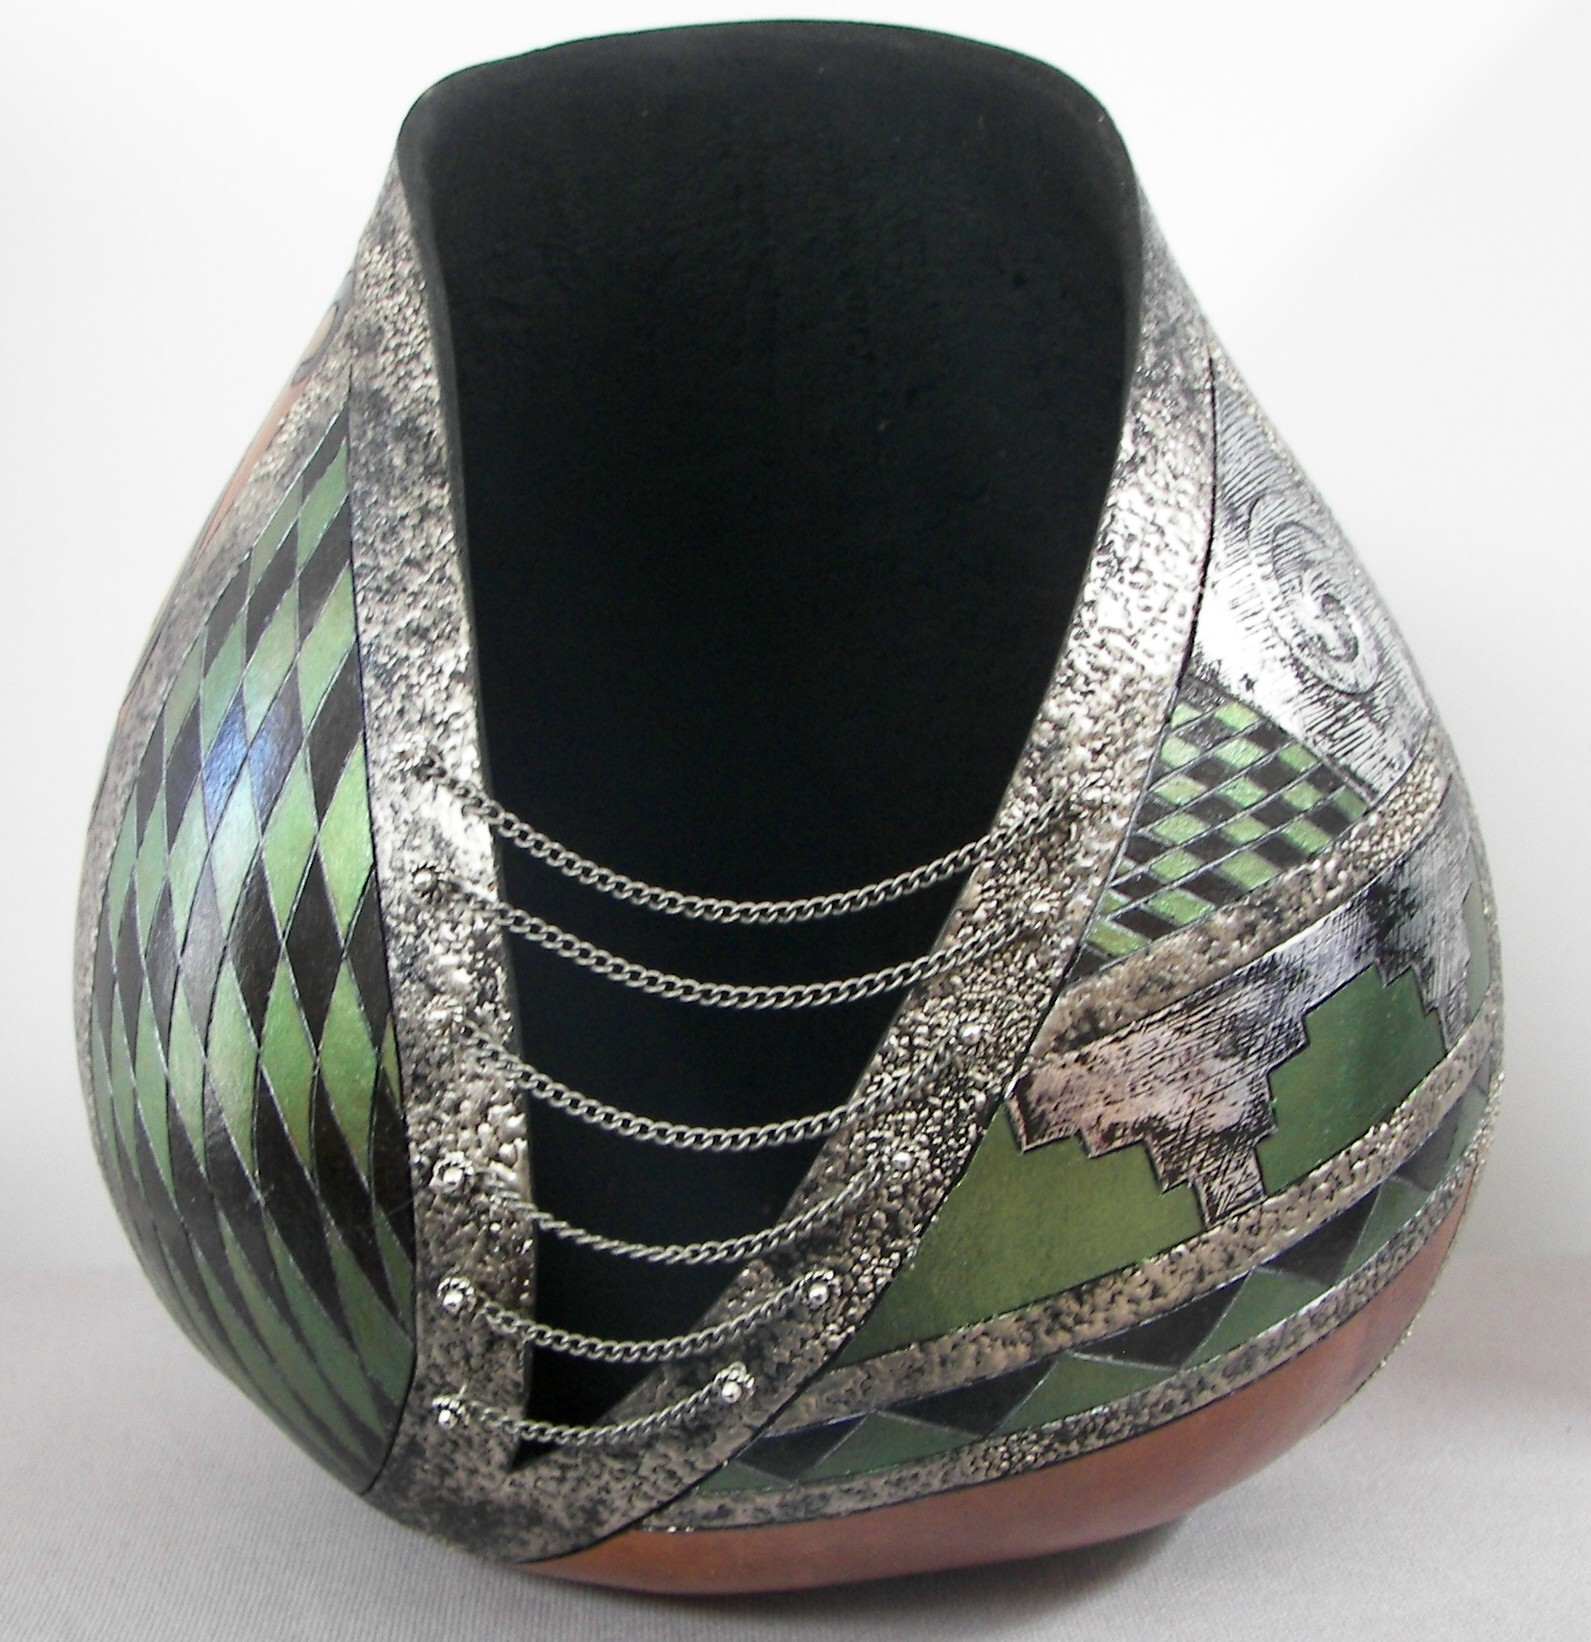 Gourd-with-Silver-Tape-and-Olive-Green-3-19-16